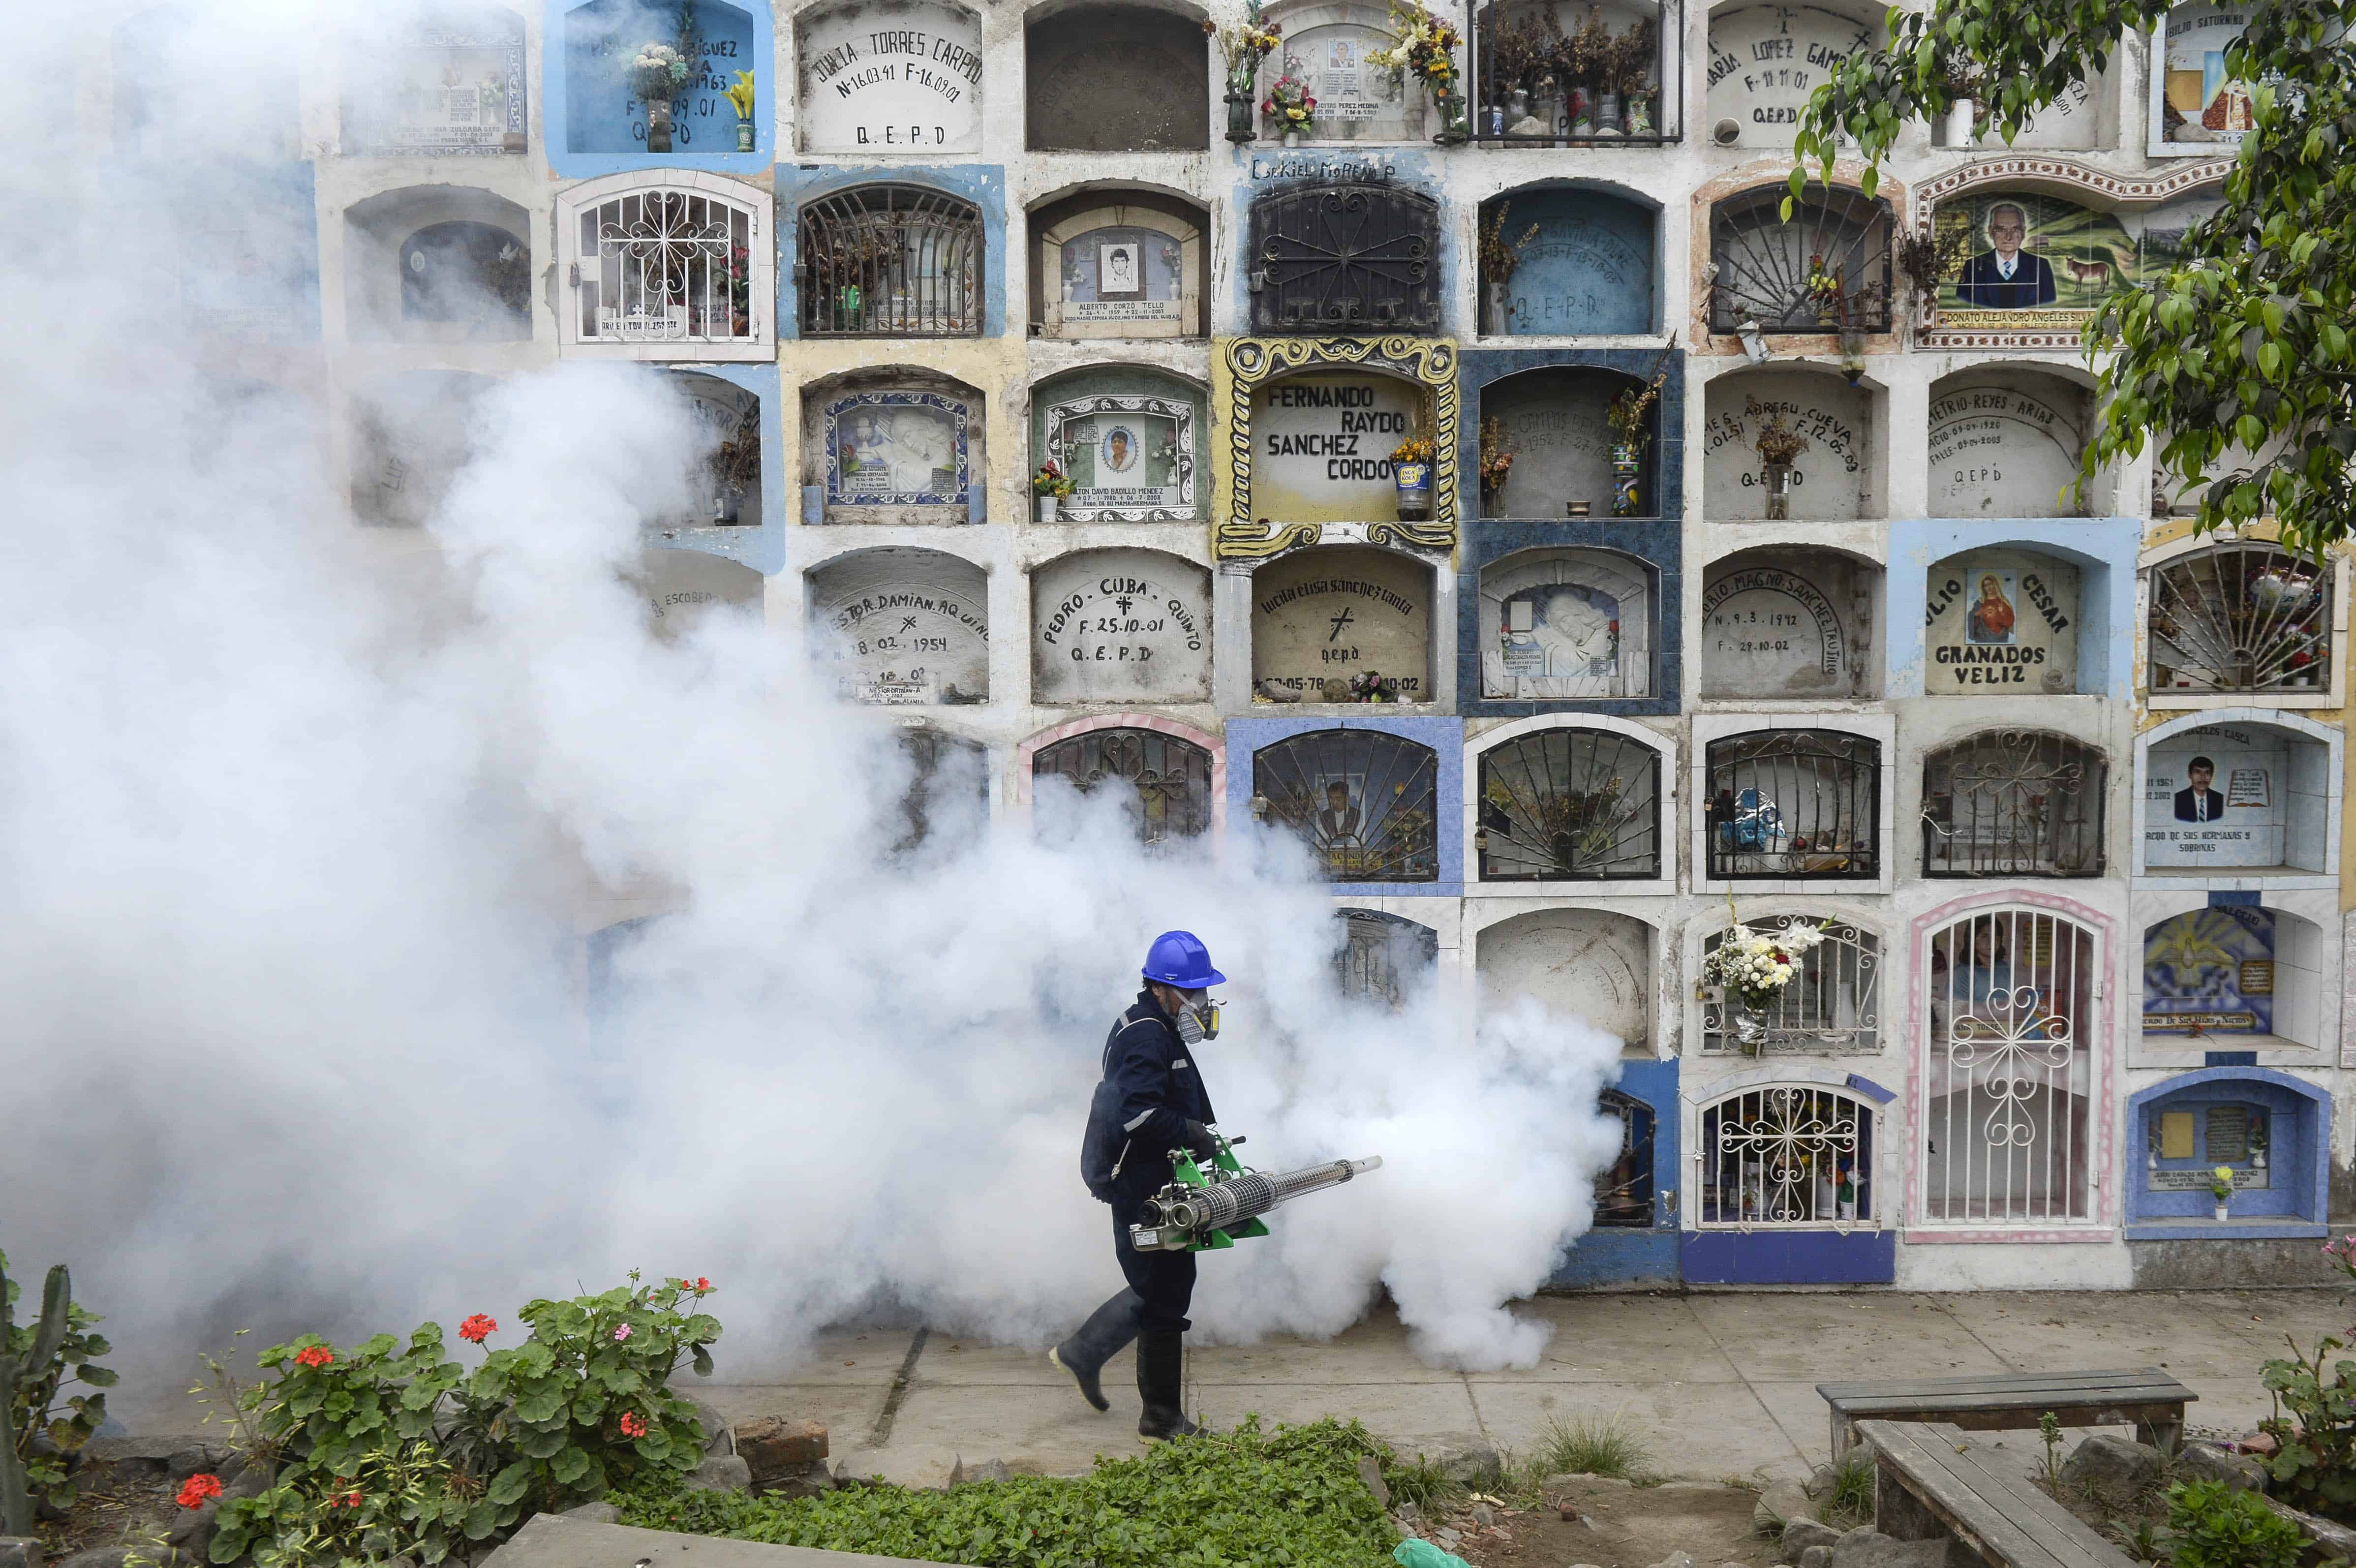 Fumigating in Peru for the zika virus